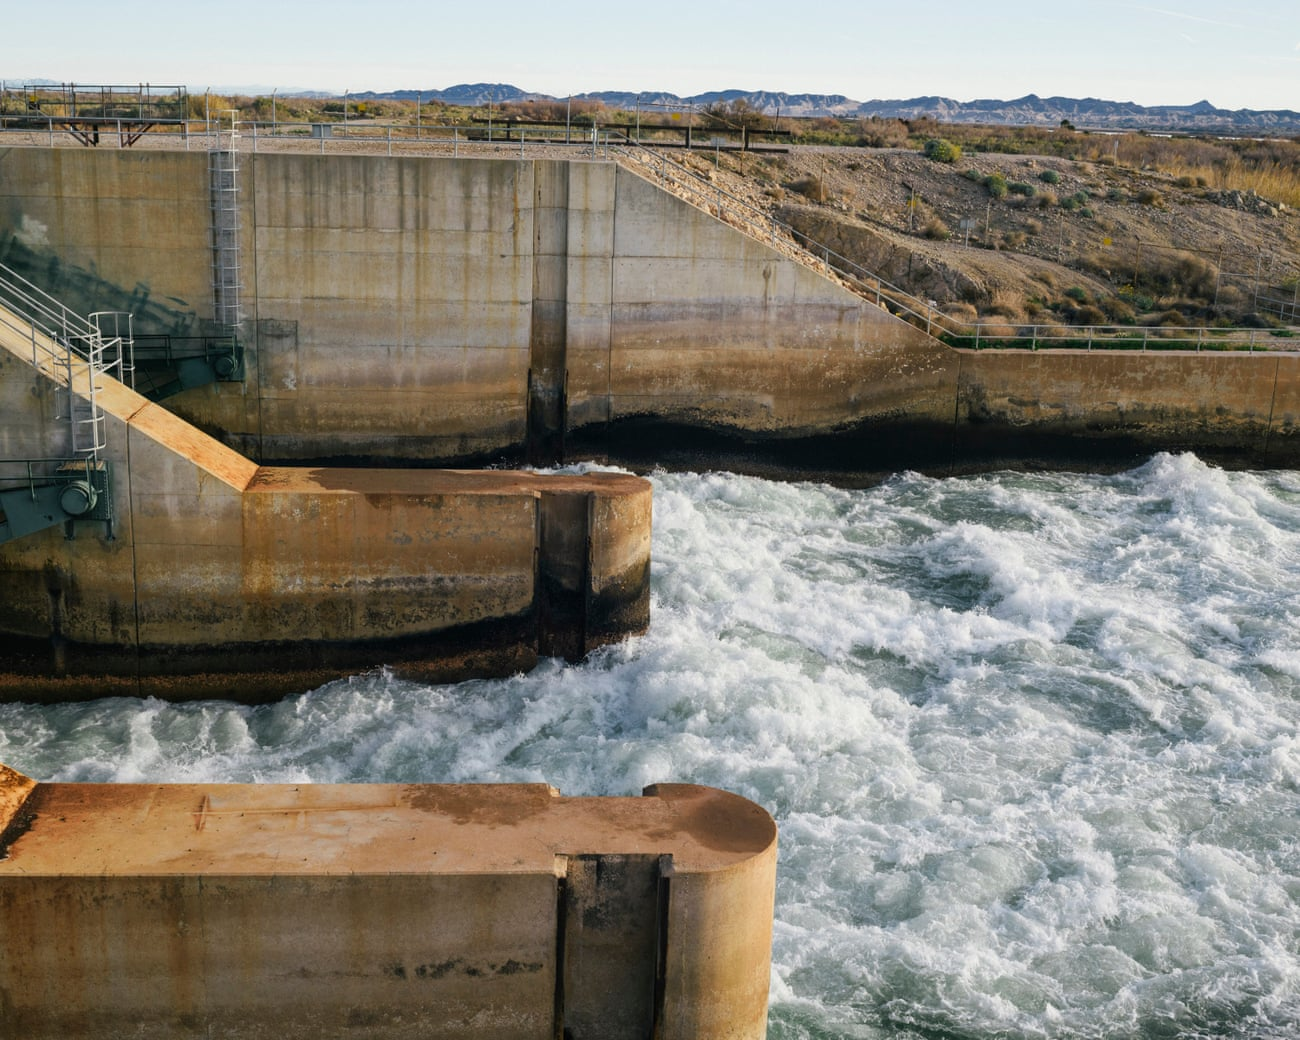 The Diversion Dam on the Lower Colorado River, regulated and monitored by the PVID, Blythe, California, USA, 2019